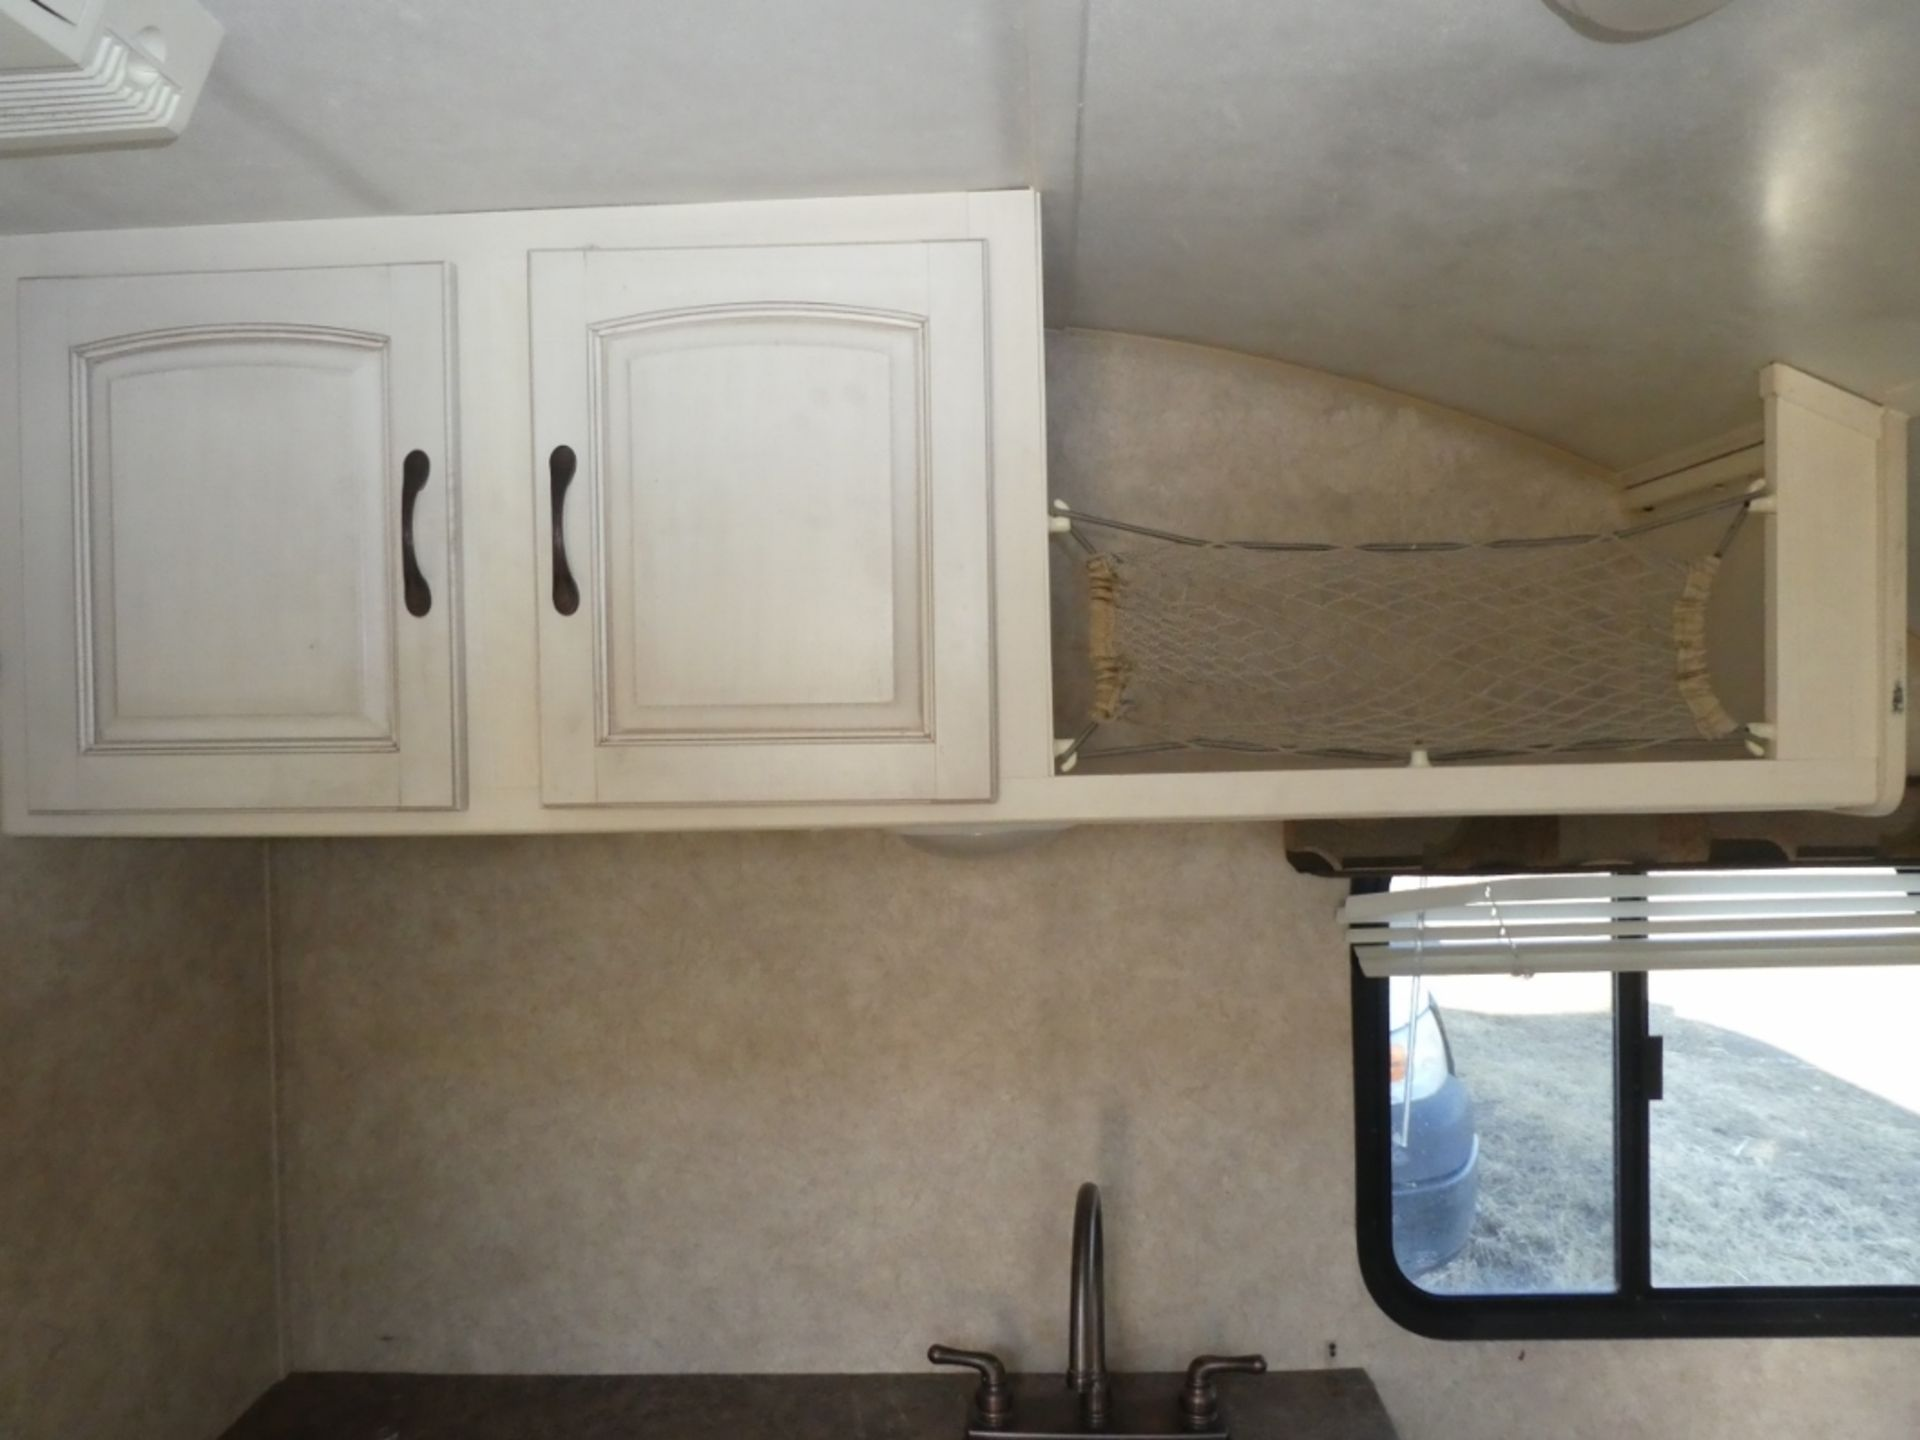 10/2008 FOREST RIVER R-POD S/A HOLIDAY TRAILER MODEL RP171 S/N 4X4TRP7151L004142 W/A/C, BATHROOM, - Image 5 of 12